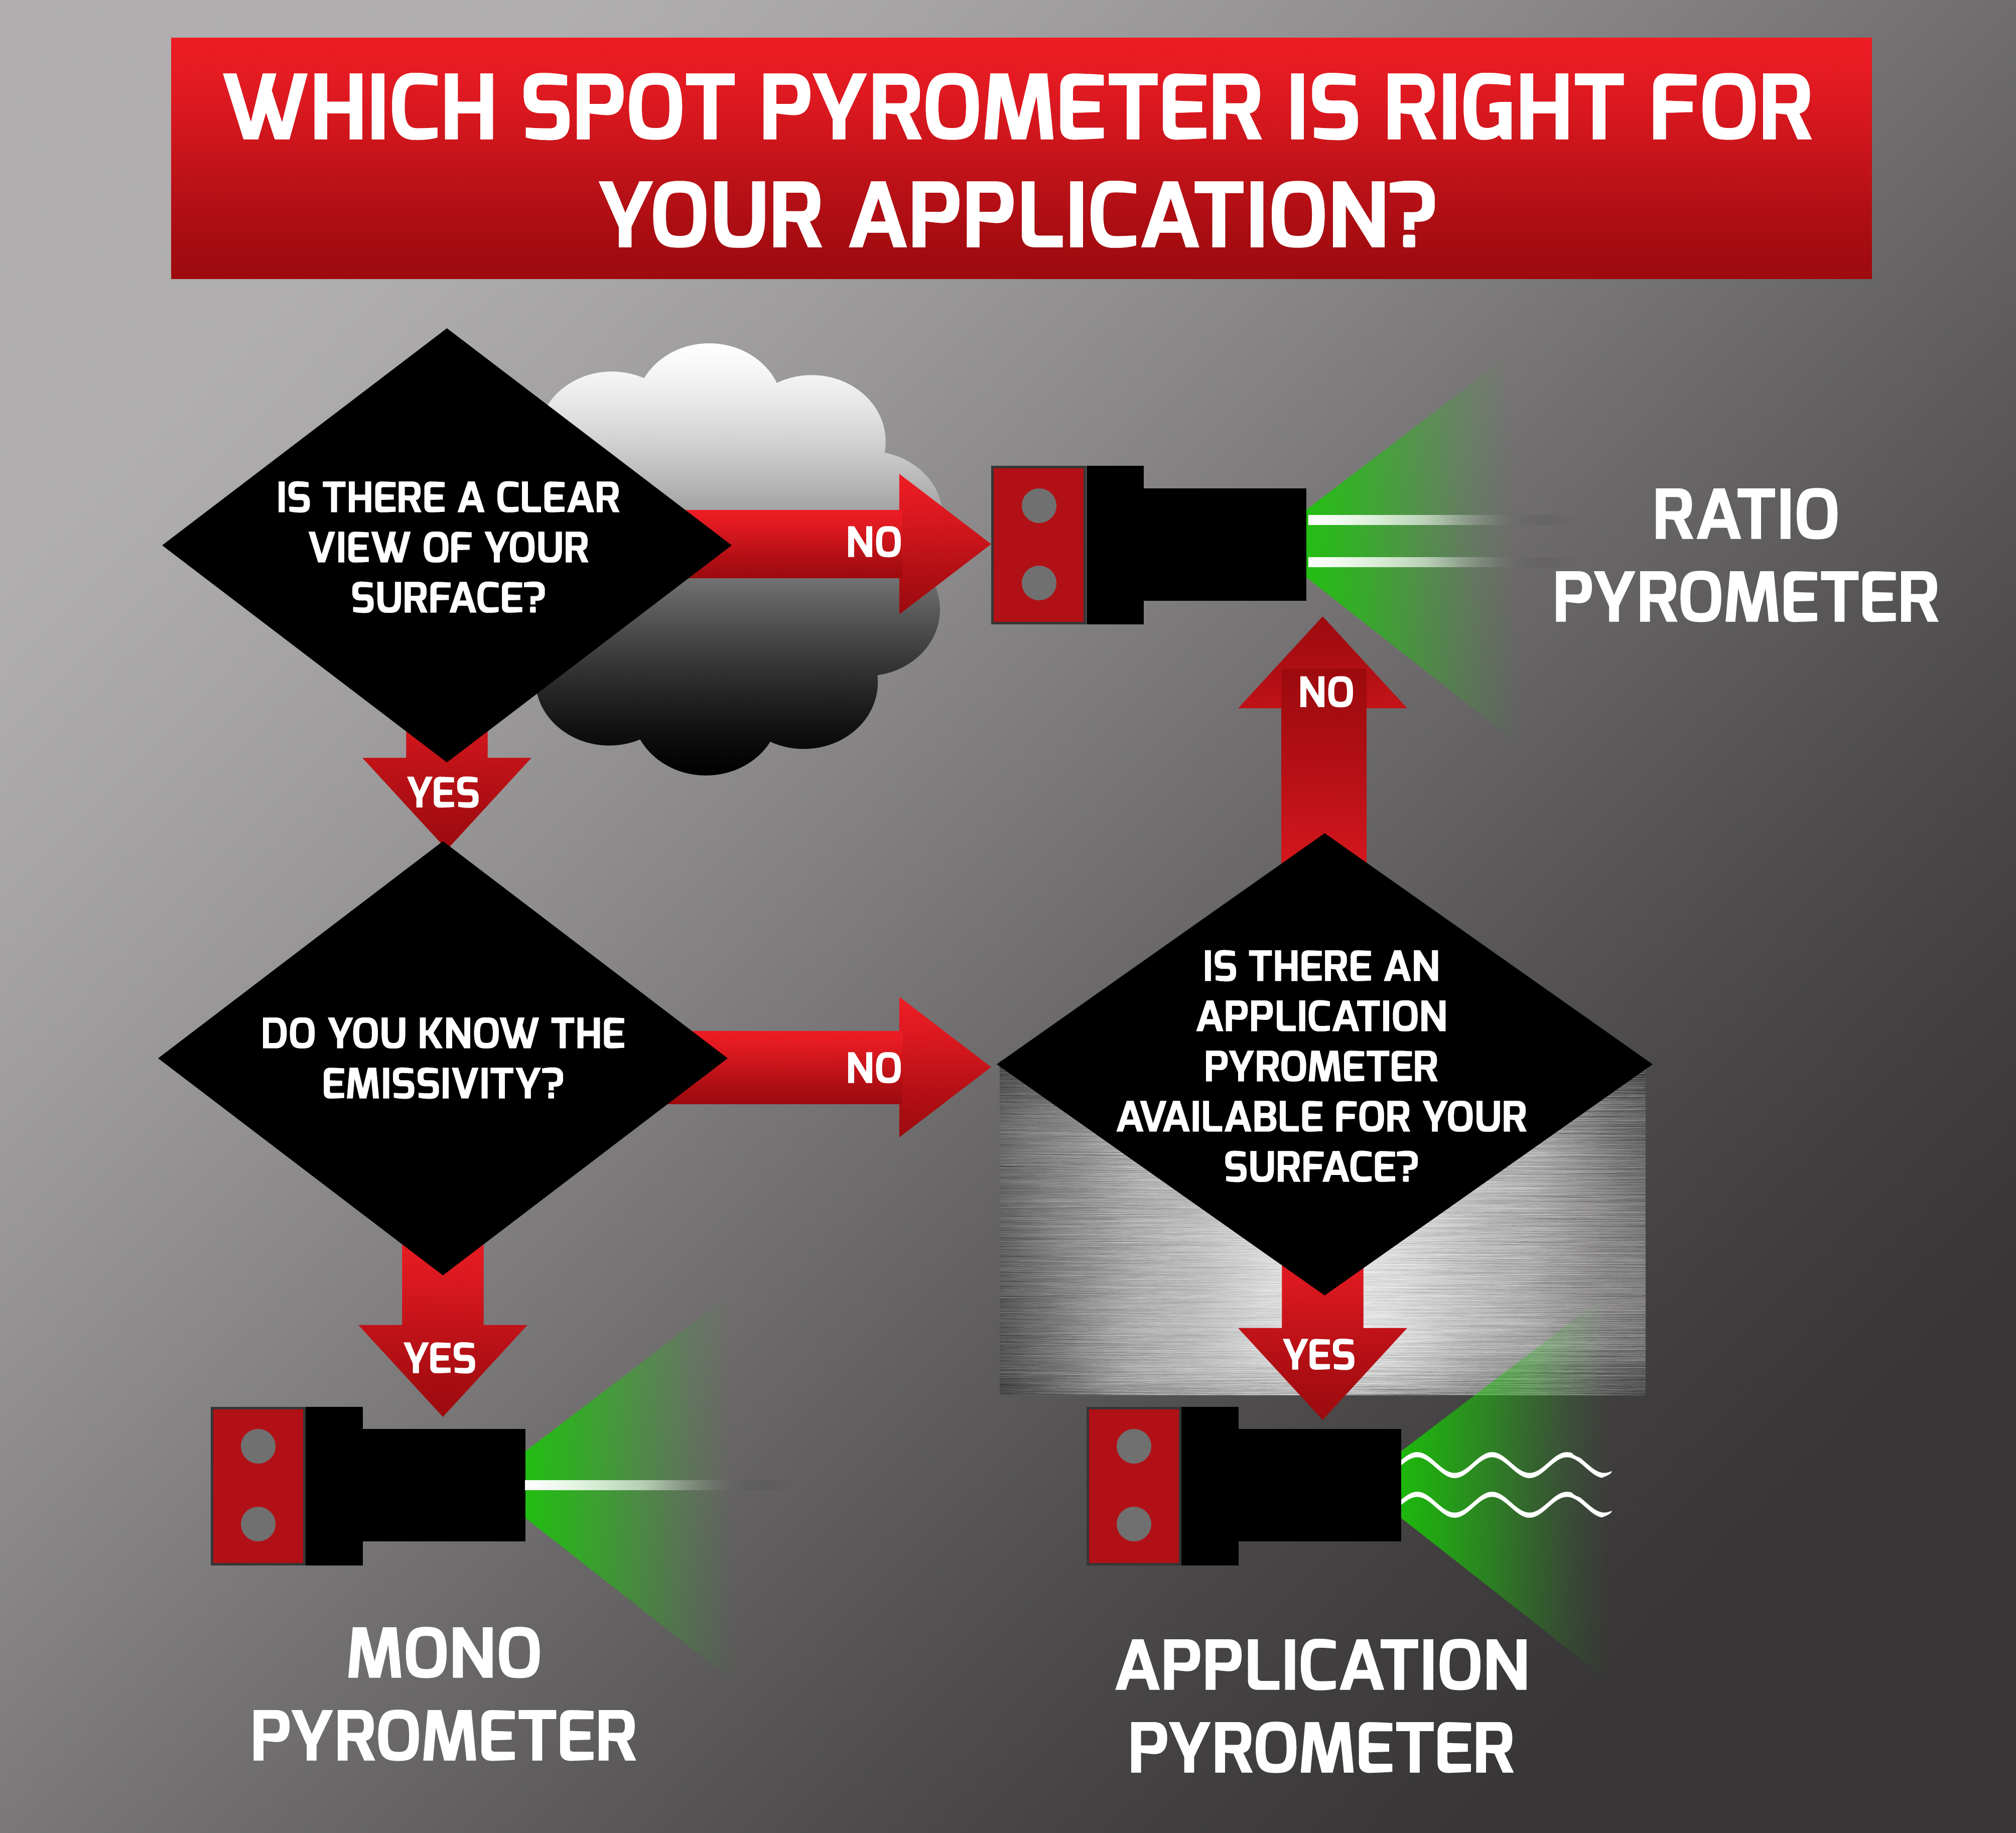 How to Choose the Best SPOT Pyrometer for your Required Application?